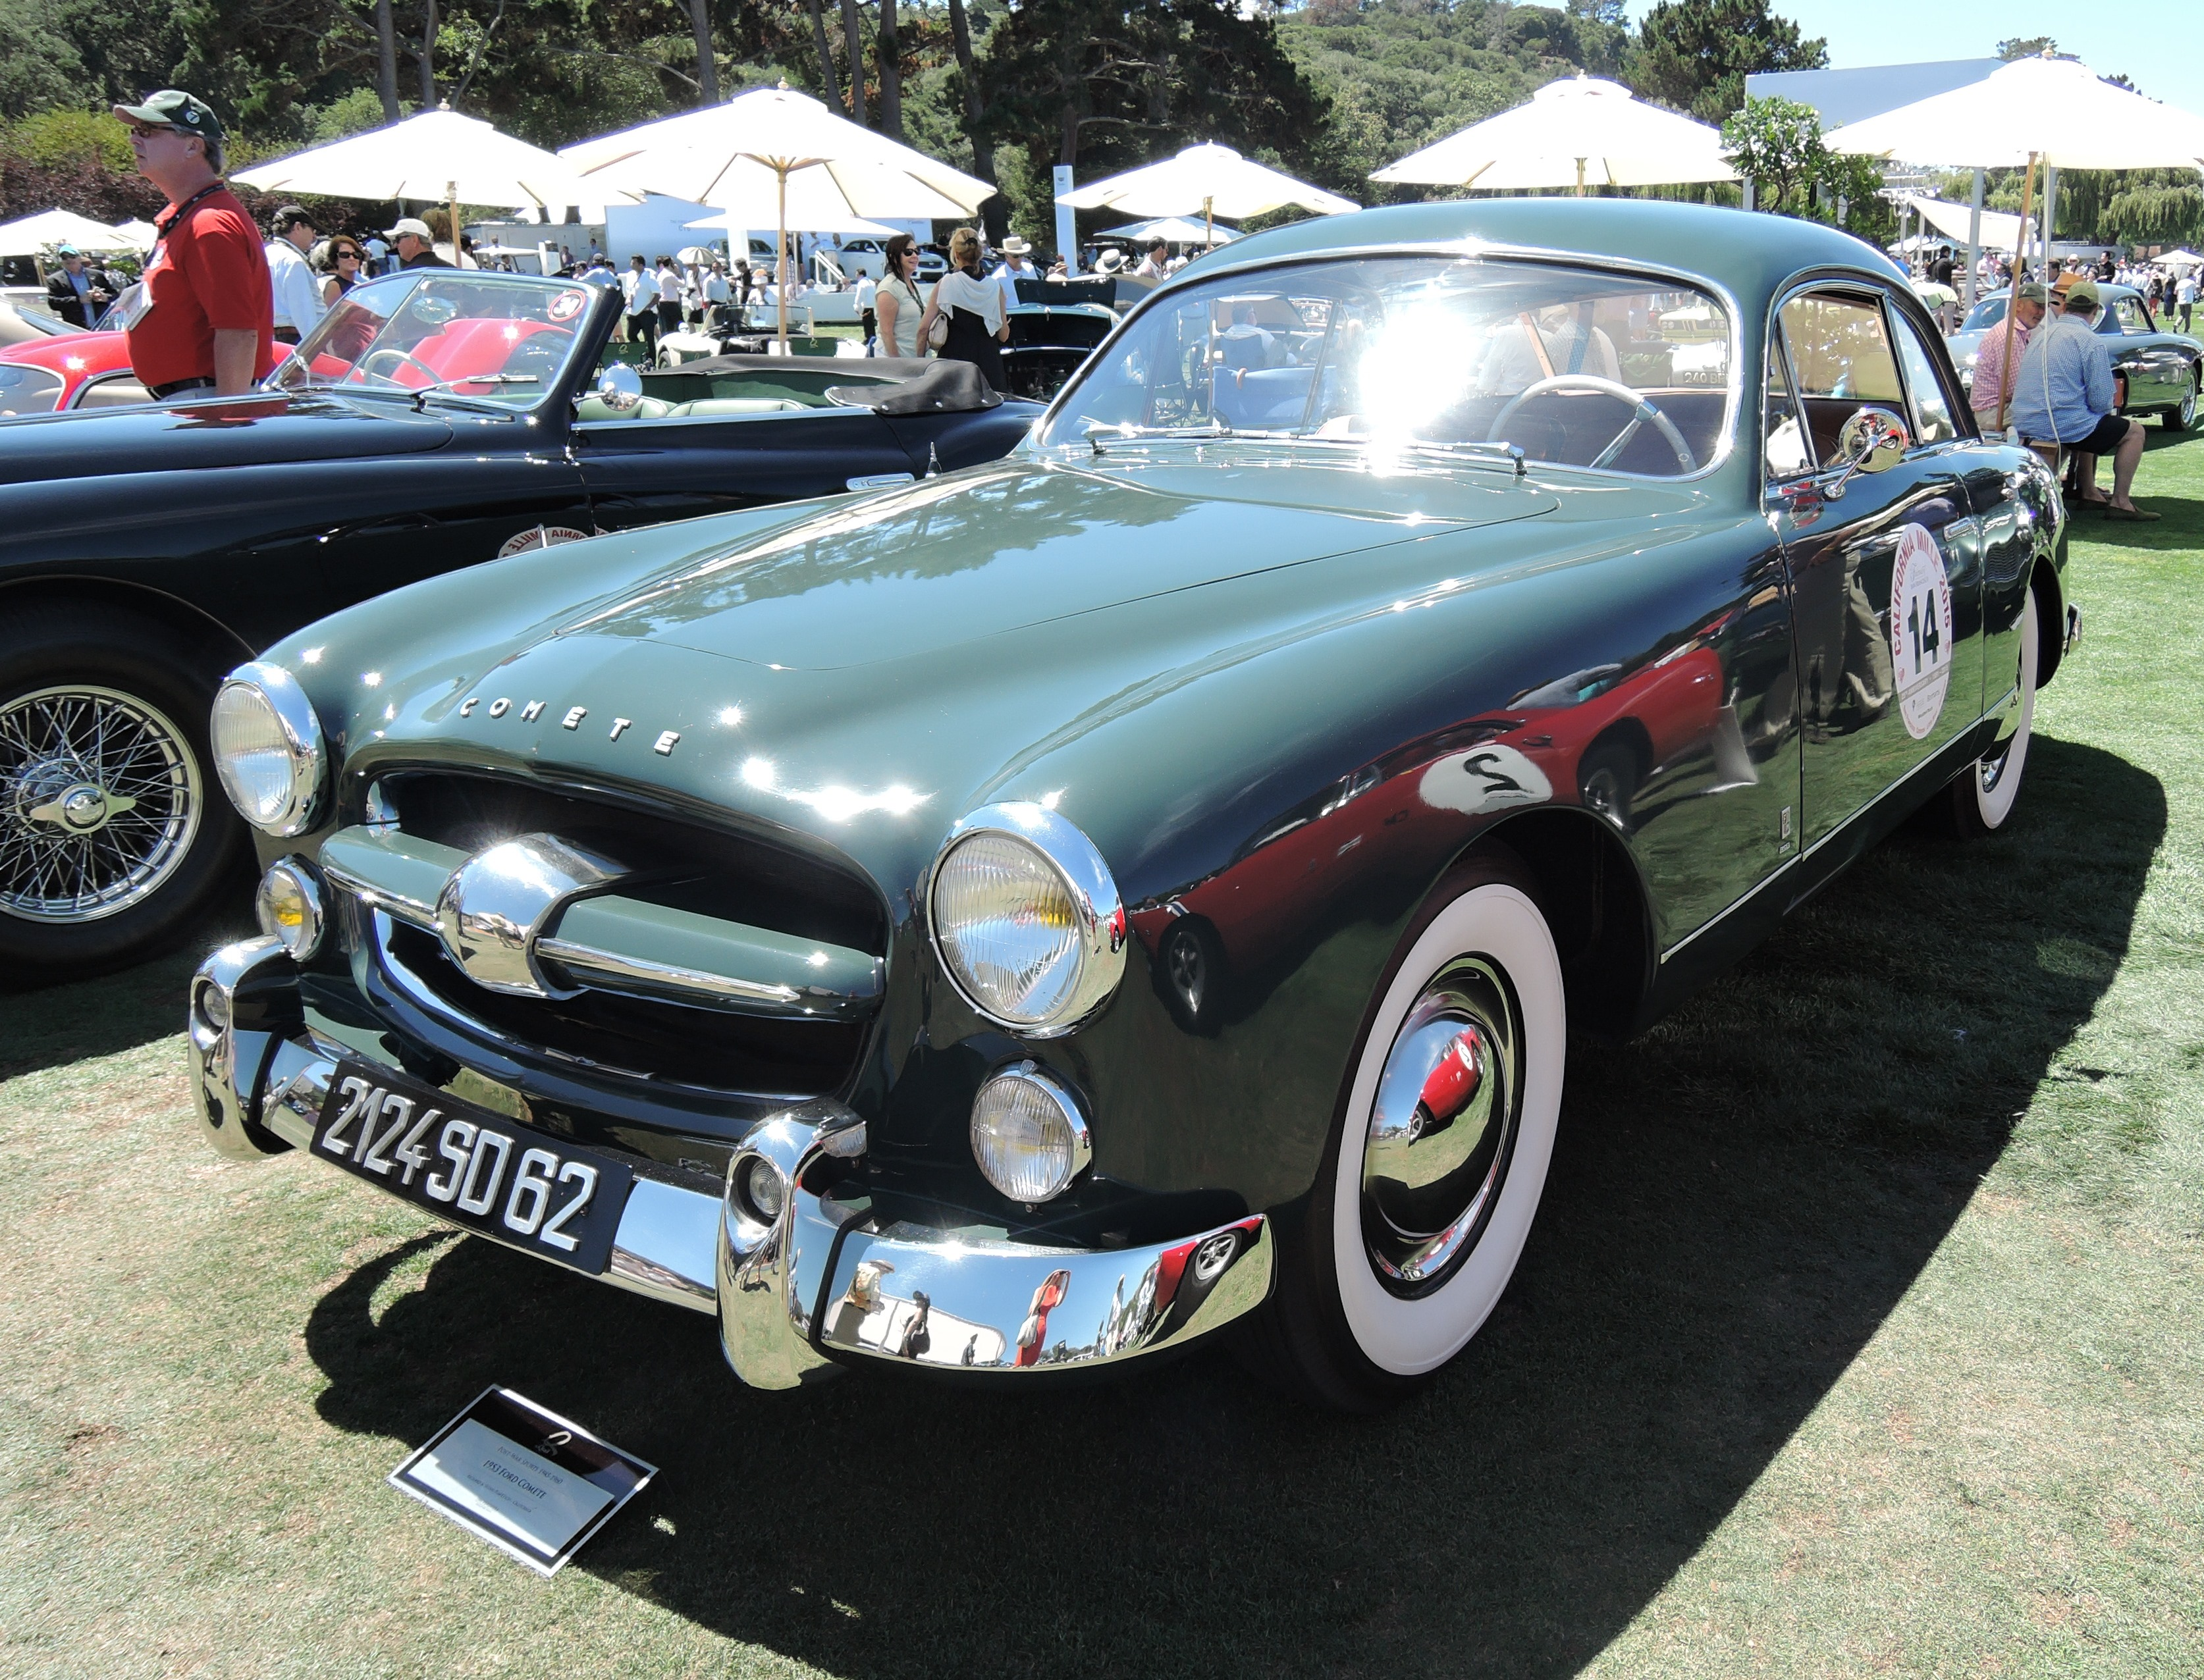 green 1953 Ford Comete - the quail